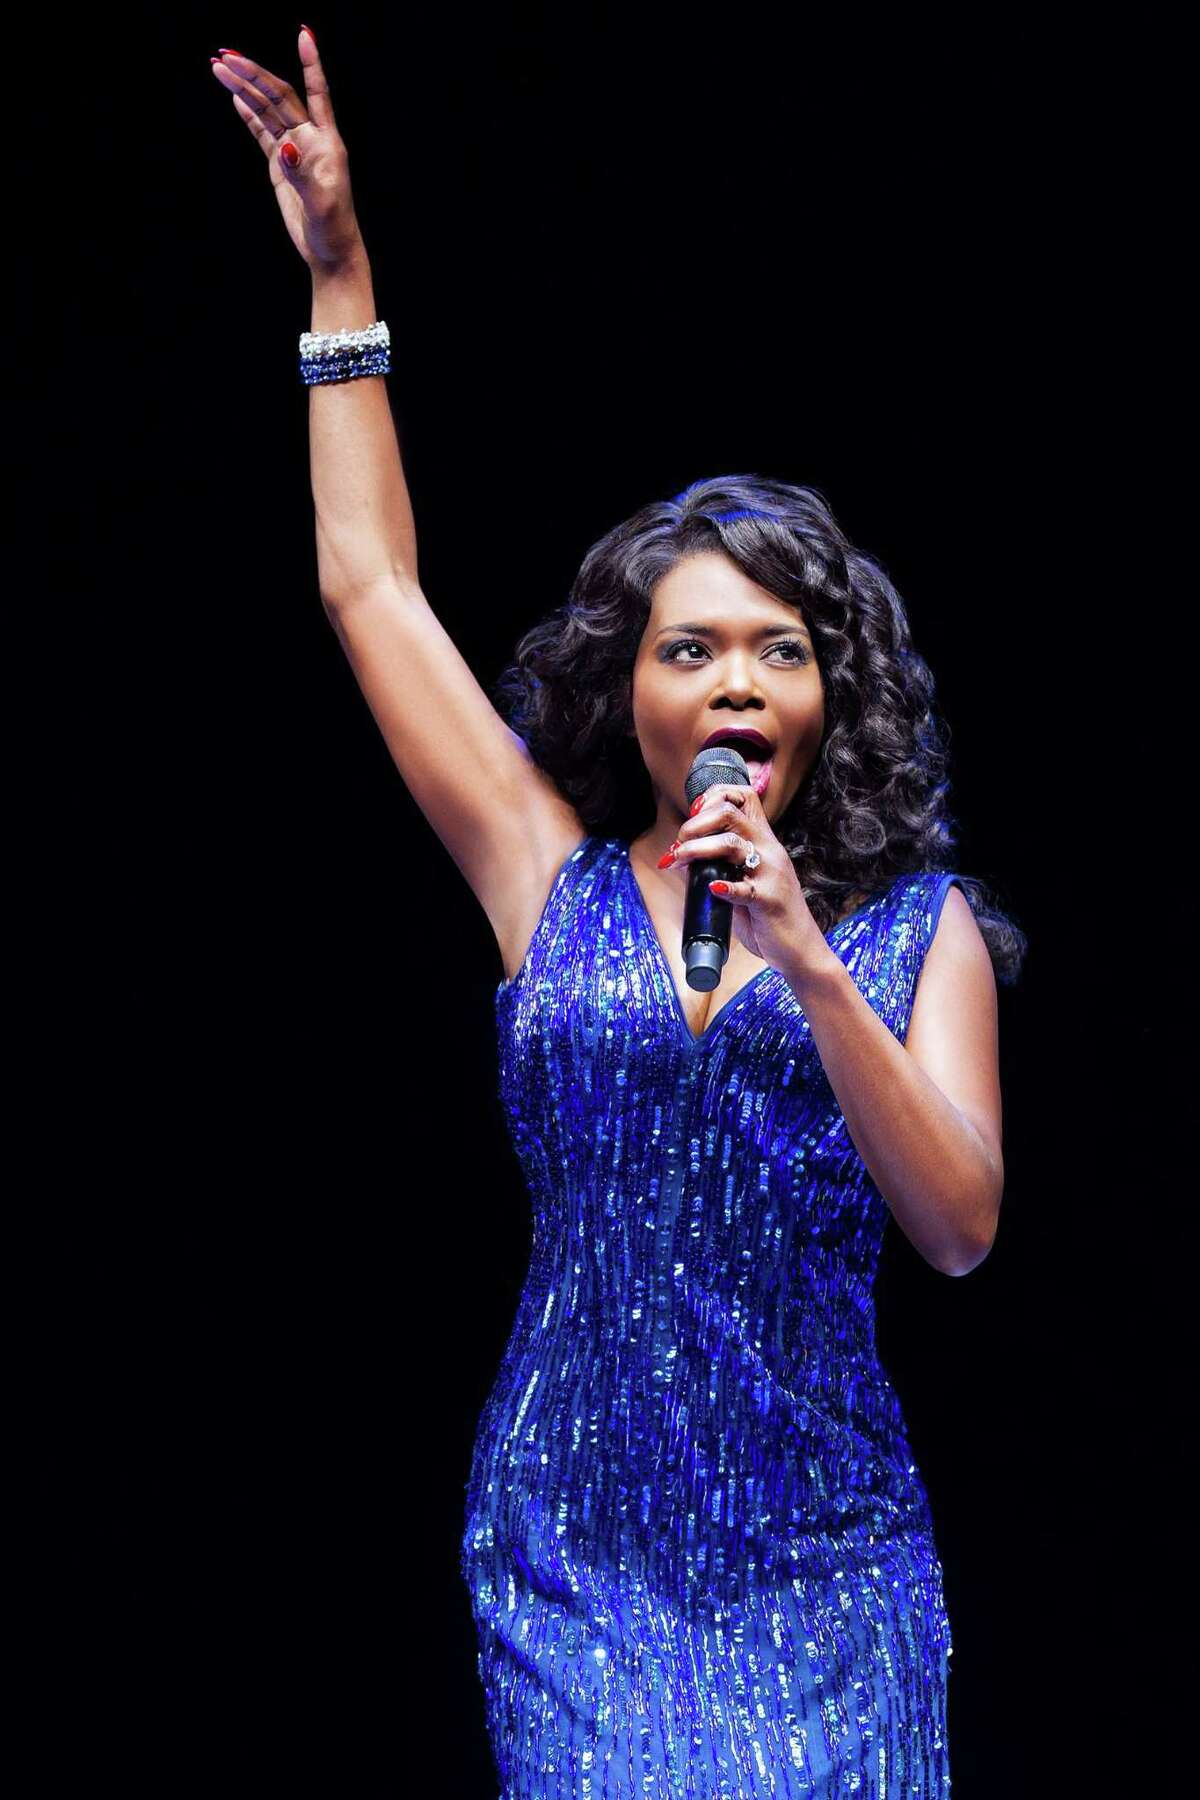 The singer/actor LaChanze relates well to Donna Summer, who she portrays in a Broadway musical.